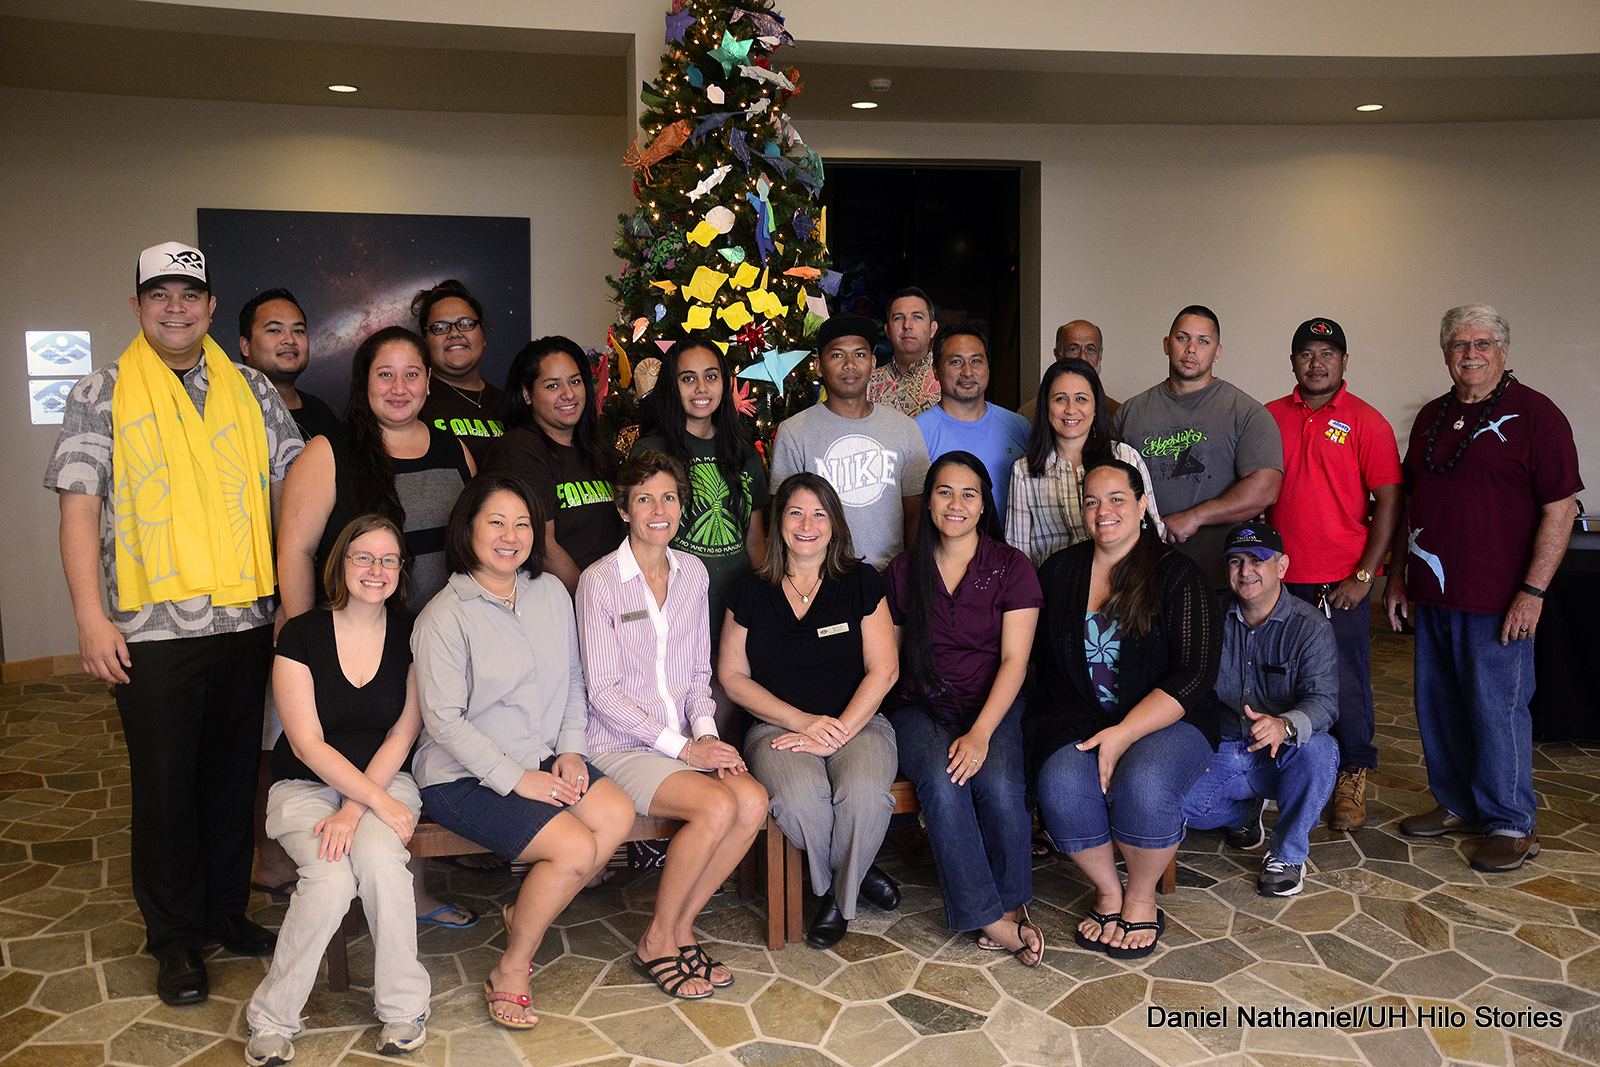 Group photo of 'Imiloa staff with holiday tree in background.